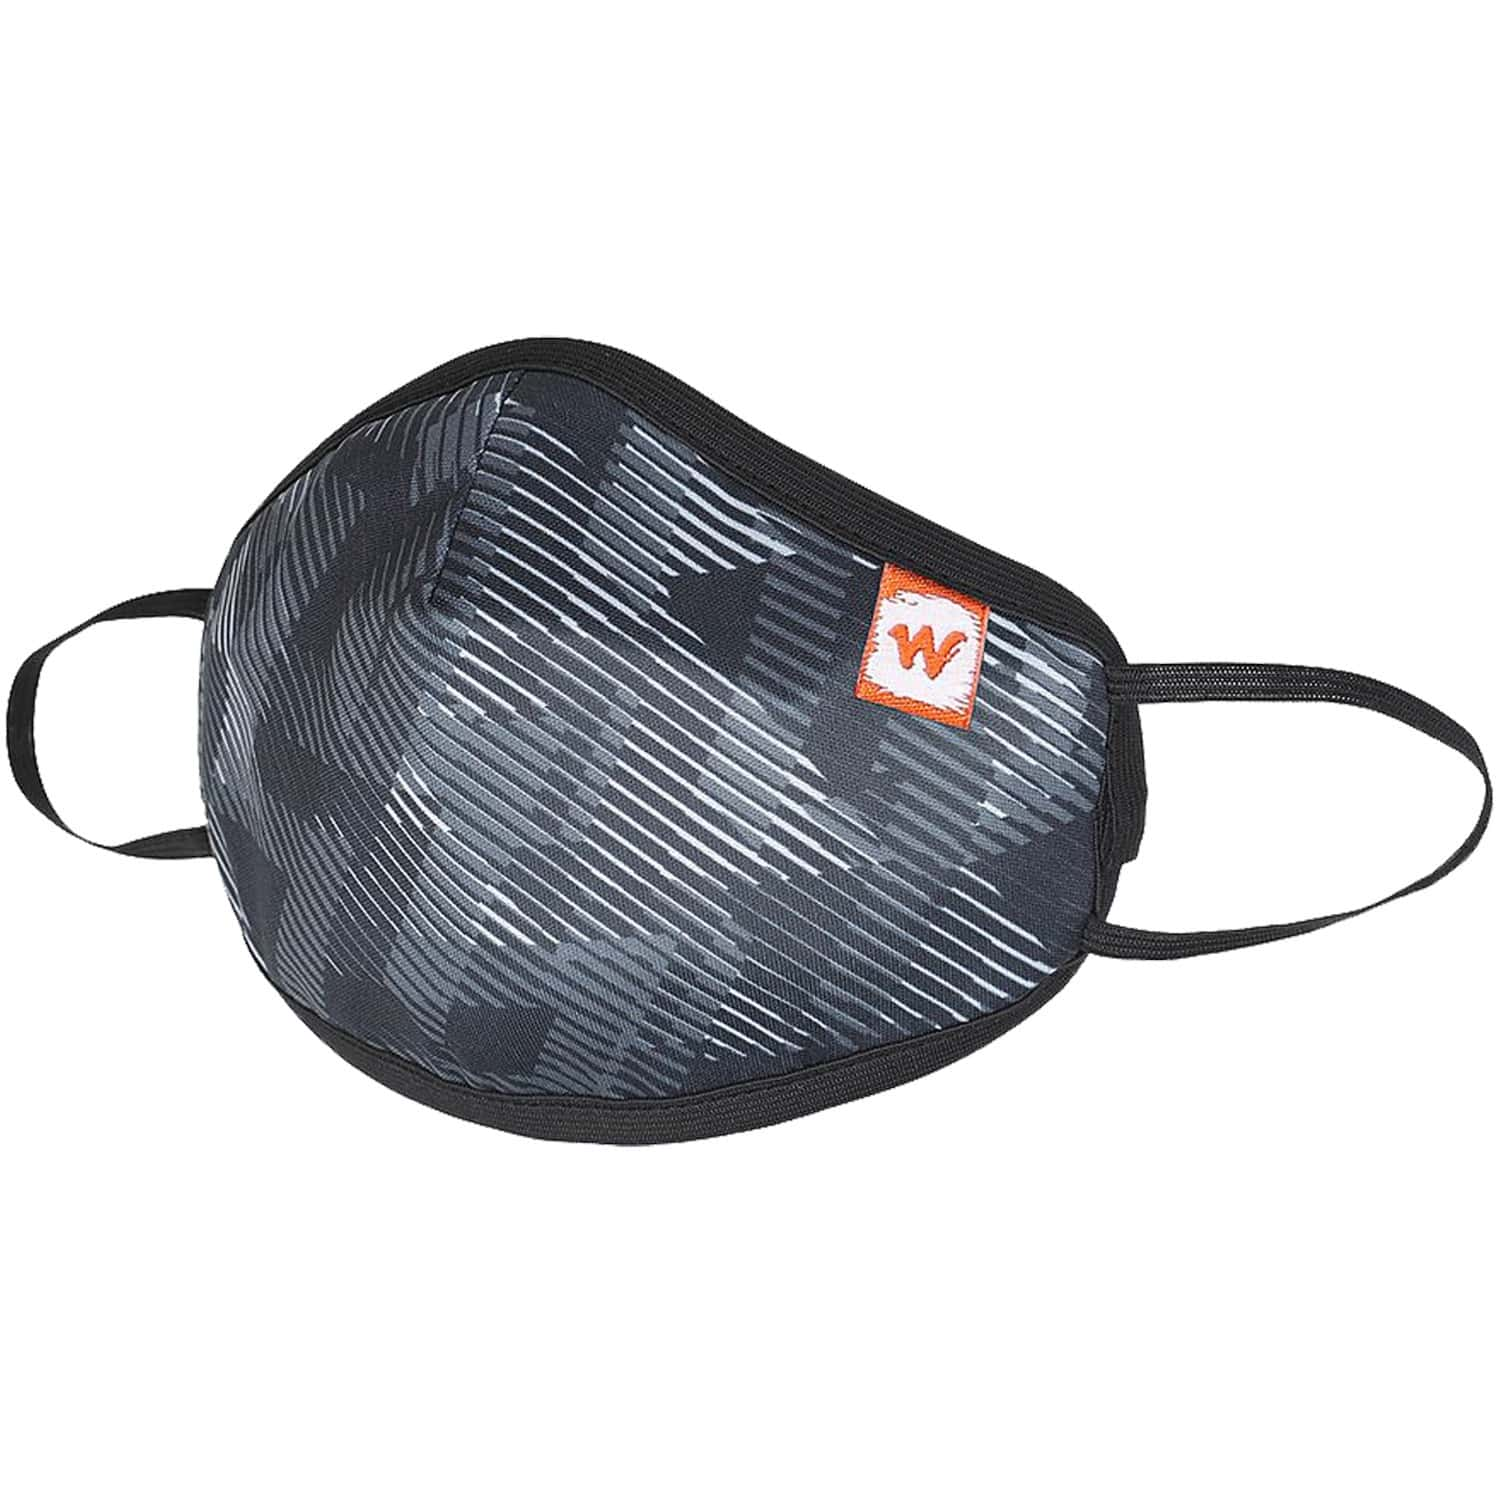 Wildcraft Supermask W95+ Reusable Outdoor Respirator Face Mask Anti-dust  Anti-bacterial   Anti-pollution- Size M